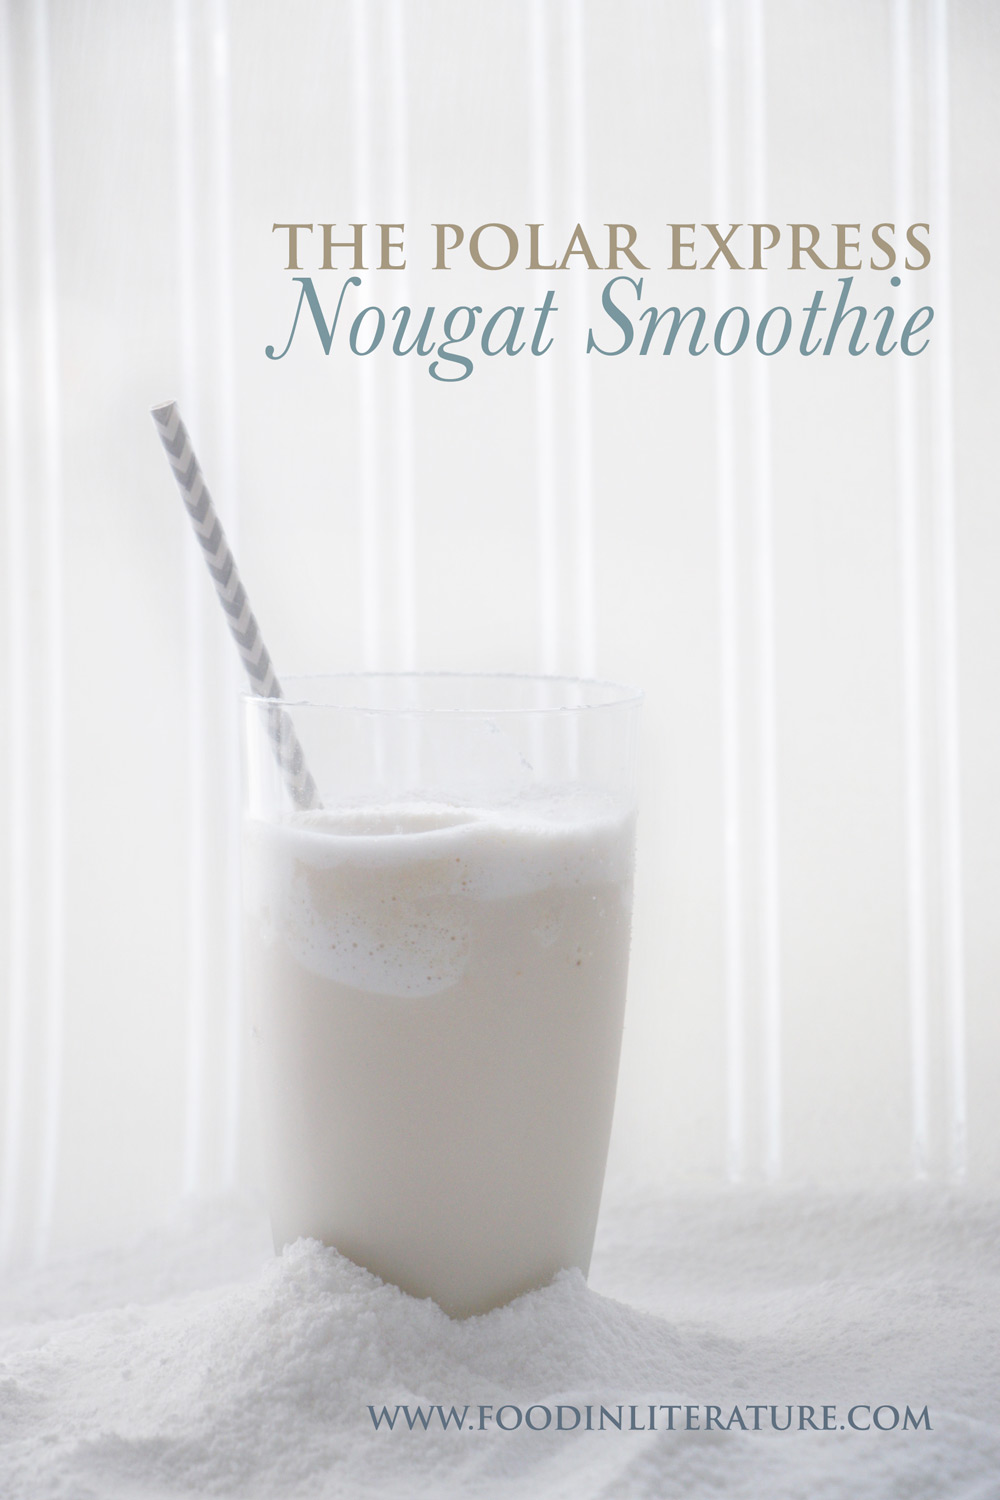 Make this easy nougat smoothie to celebrate Christmas Polar Express style, even if you live in a hot climate!